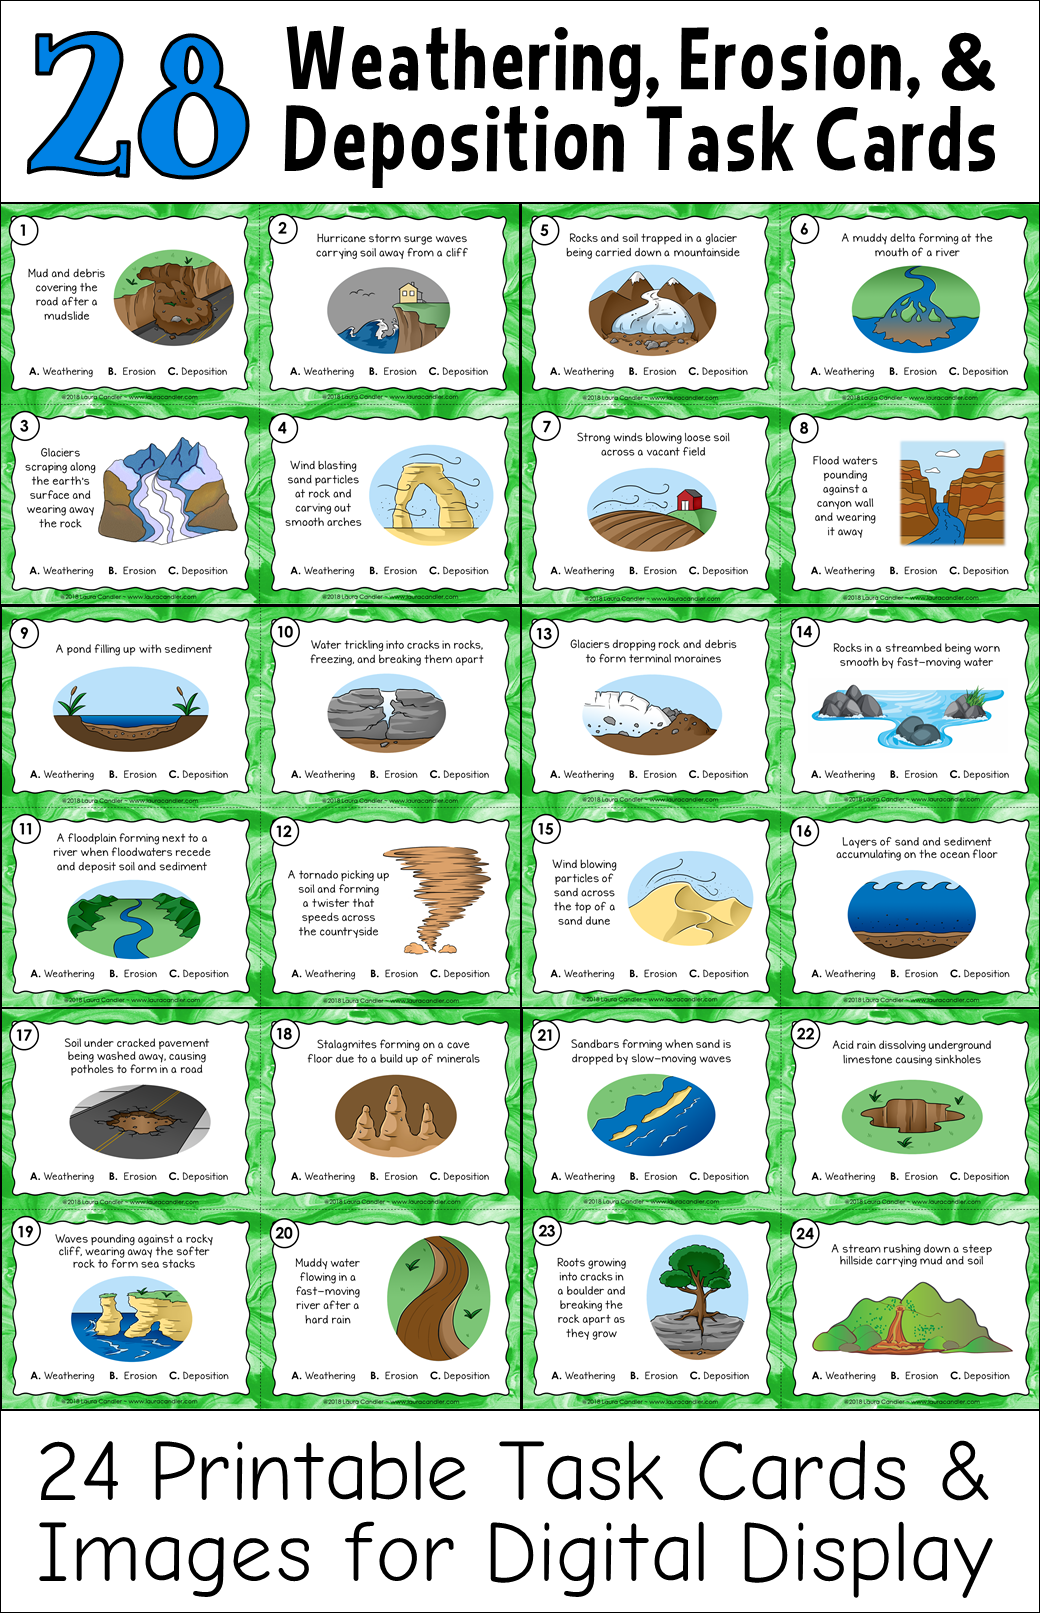 Weathering And Erosion Task Cards With Images And Classroom Quizzes